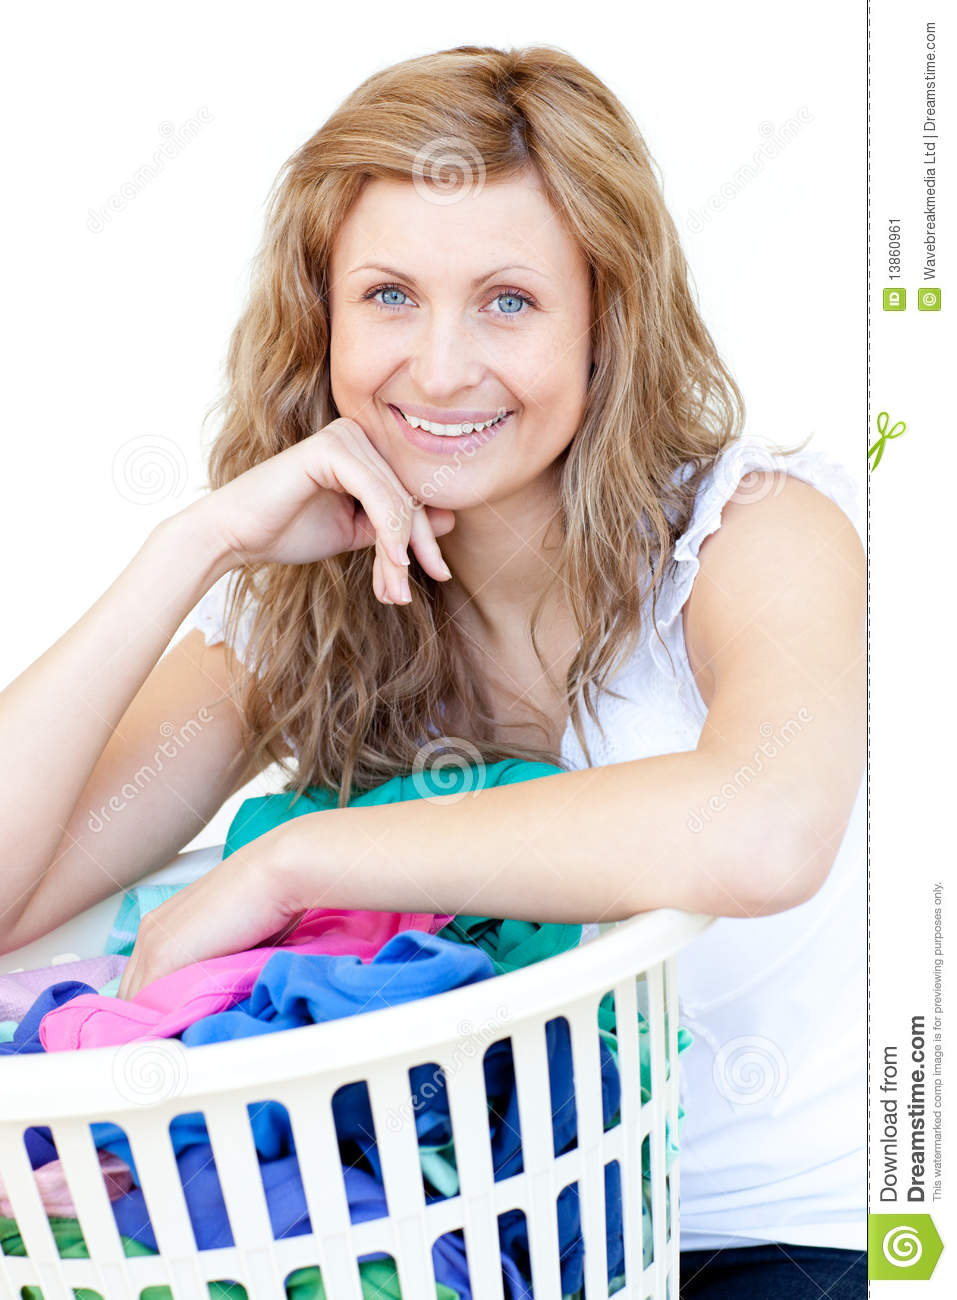 happy-woman-doing-laundry-13860961.jpg